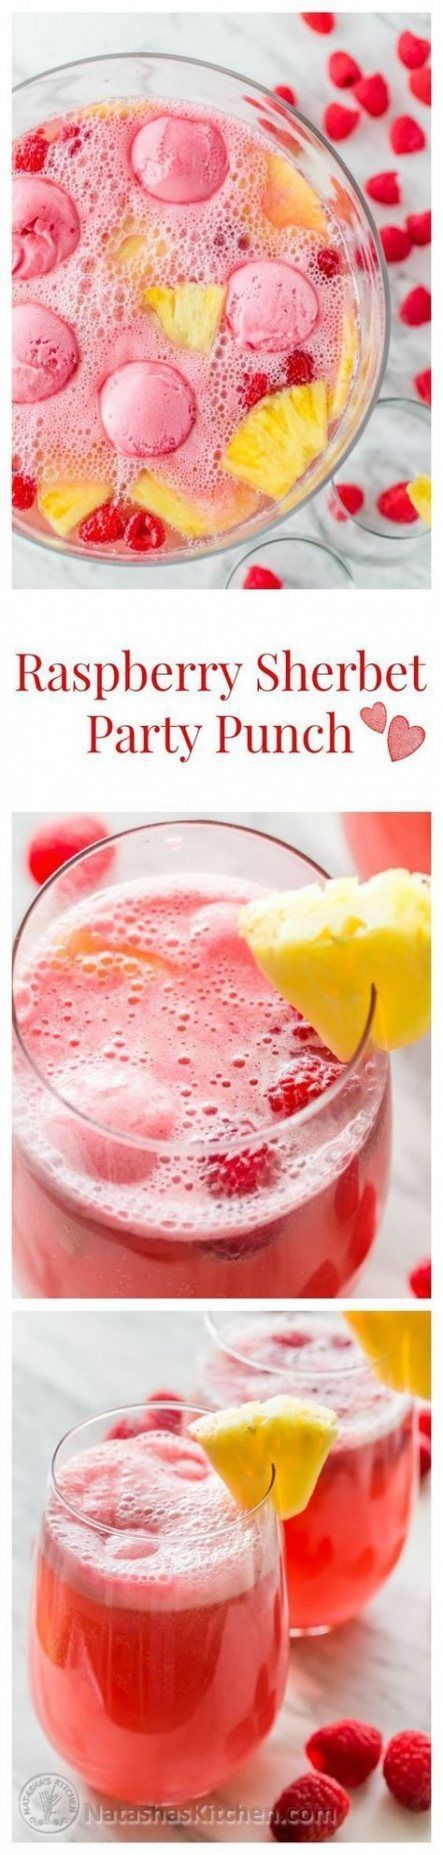 19+ ideas fruit drinks alcohol vodka punch recipes #vodkapunch 19+ ideas fruit drinks alcohol vodka punch recipes #recipes #fruit #drinks #vodkapunch 19+ ideas fruit drinks alcohol vodka punch recipes #vodkapunch 19+ ideas fruit drinks alcohol vodka punch recipes #recipes #fruit #drinks #vodkapunch